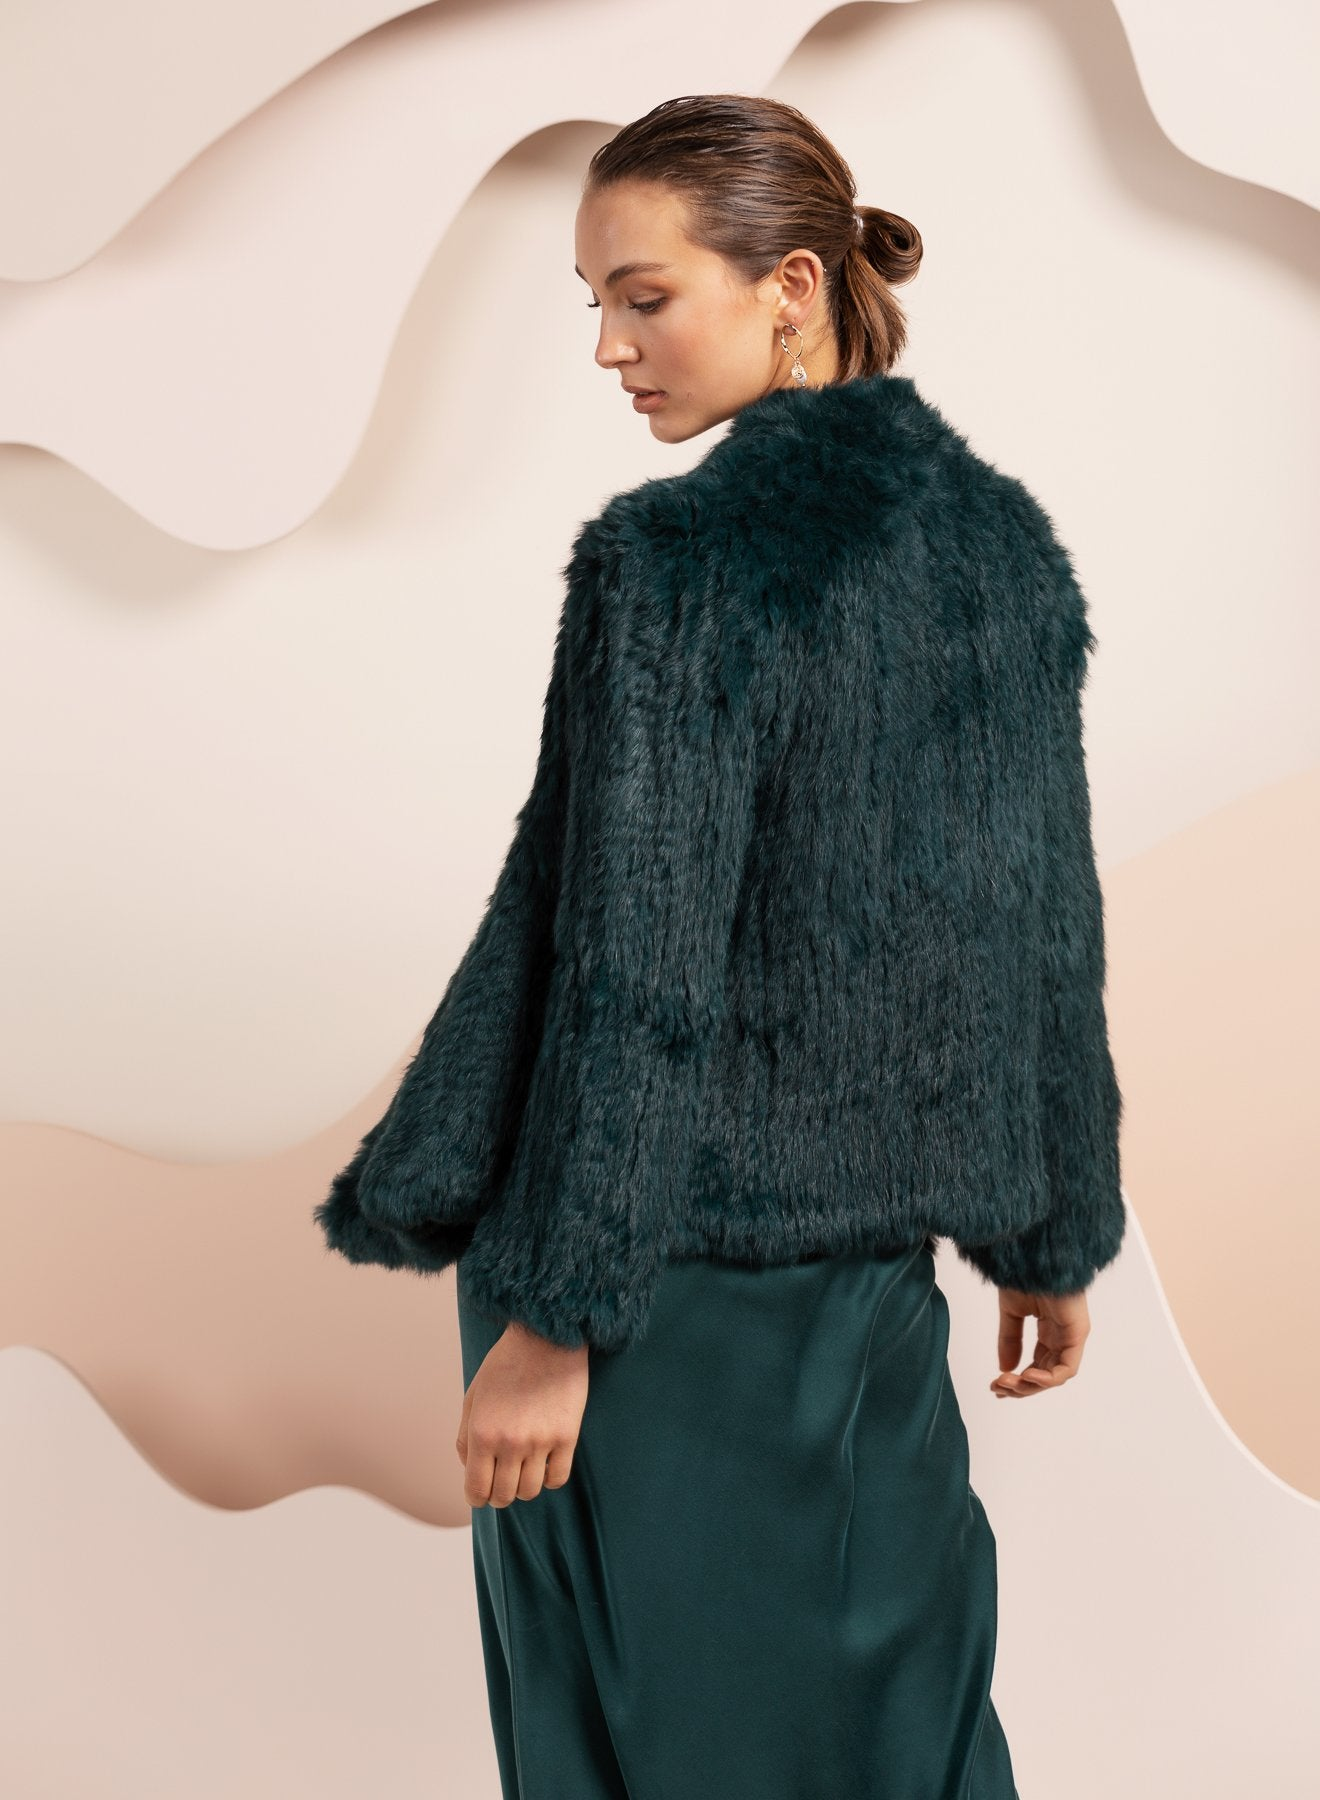 bubish emereld green real rabbit fur jacket for evening